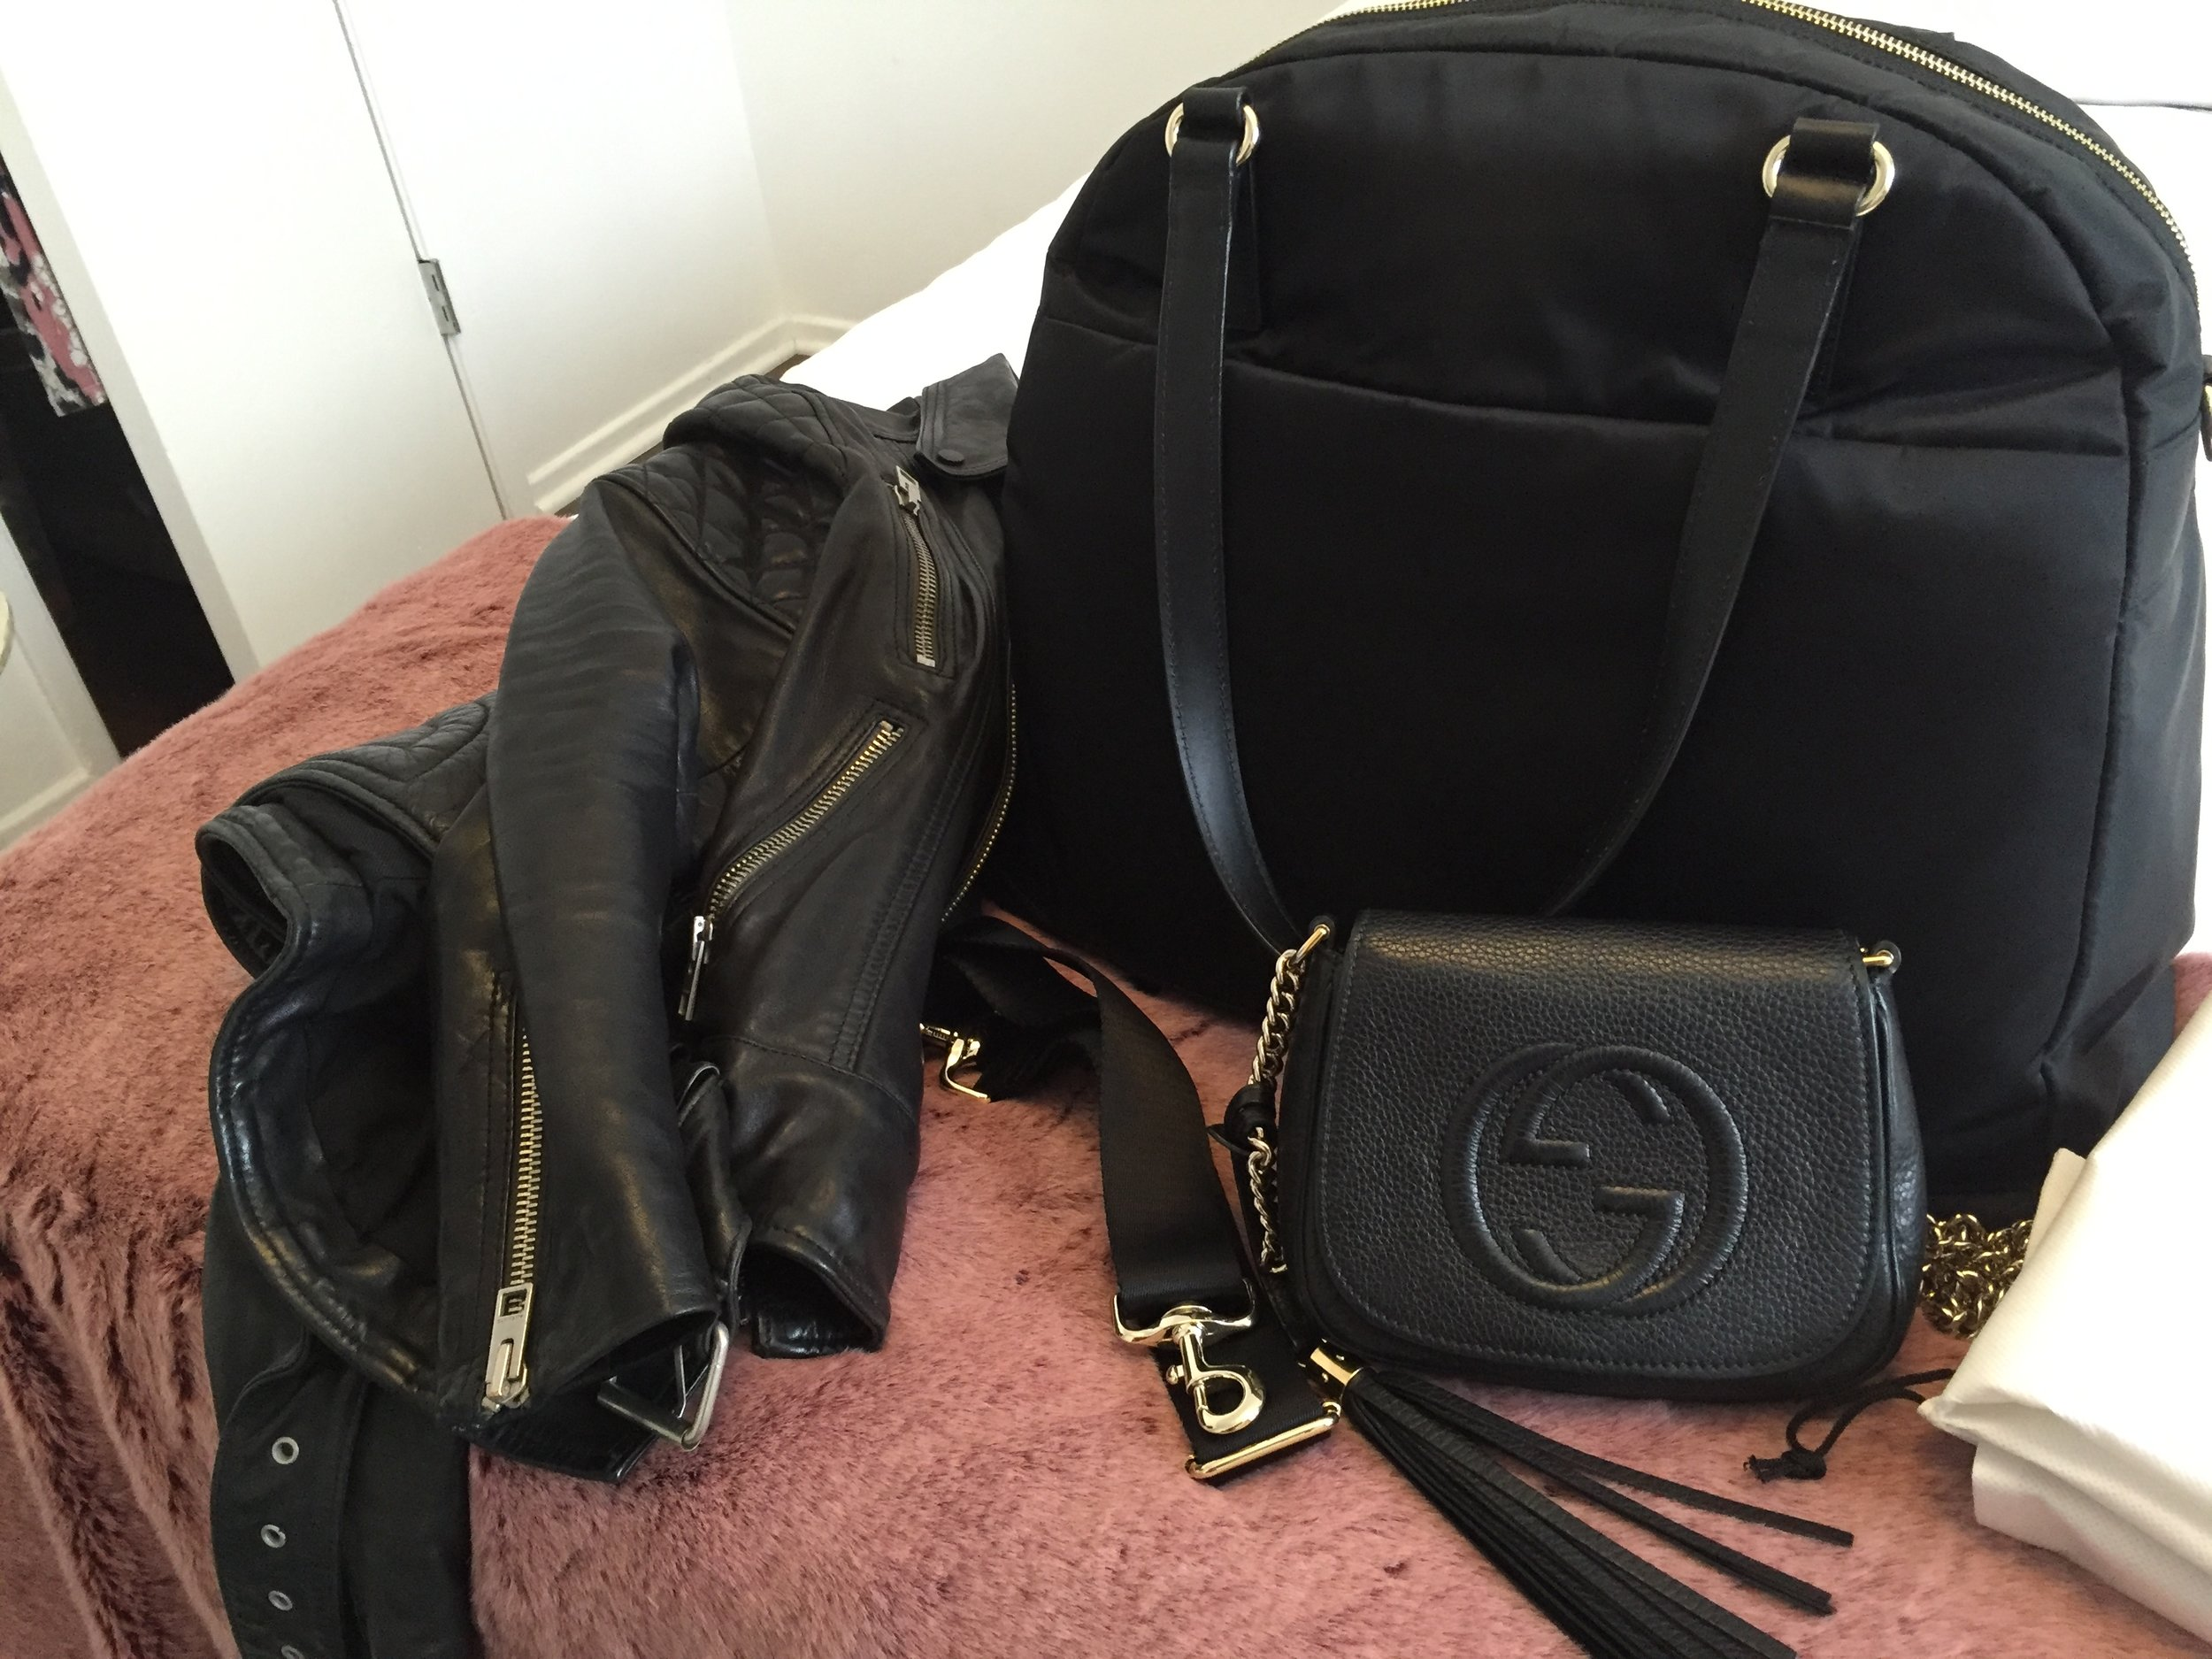 Leather Jacket, Gucci Purse, Carryon Bag